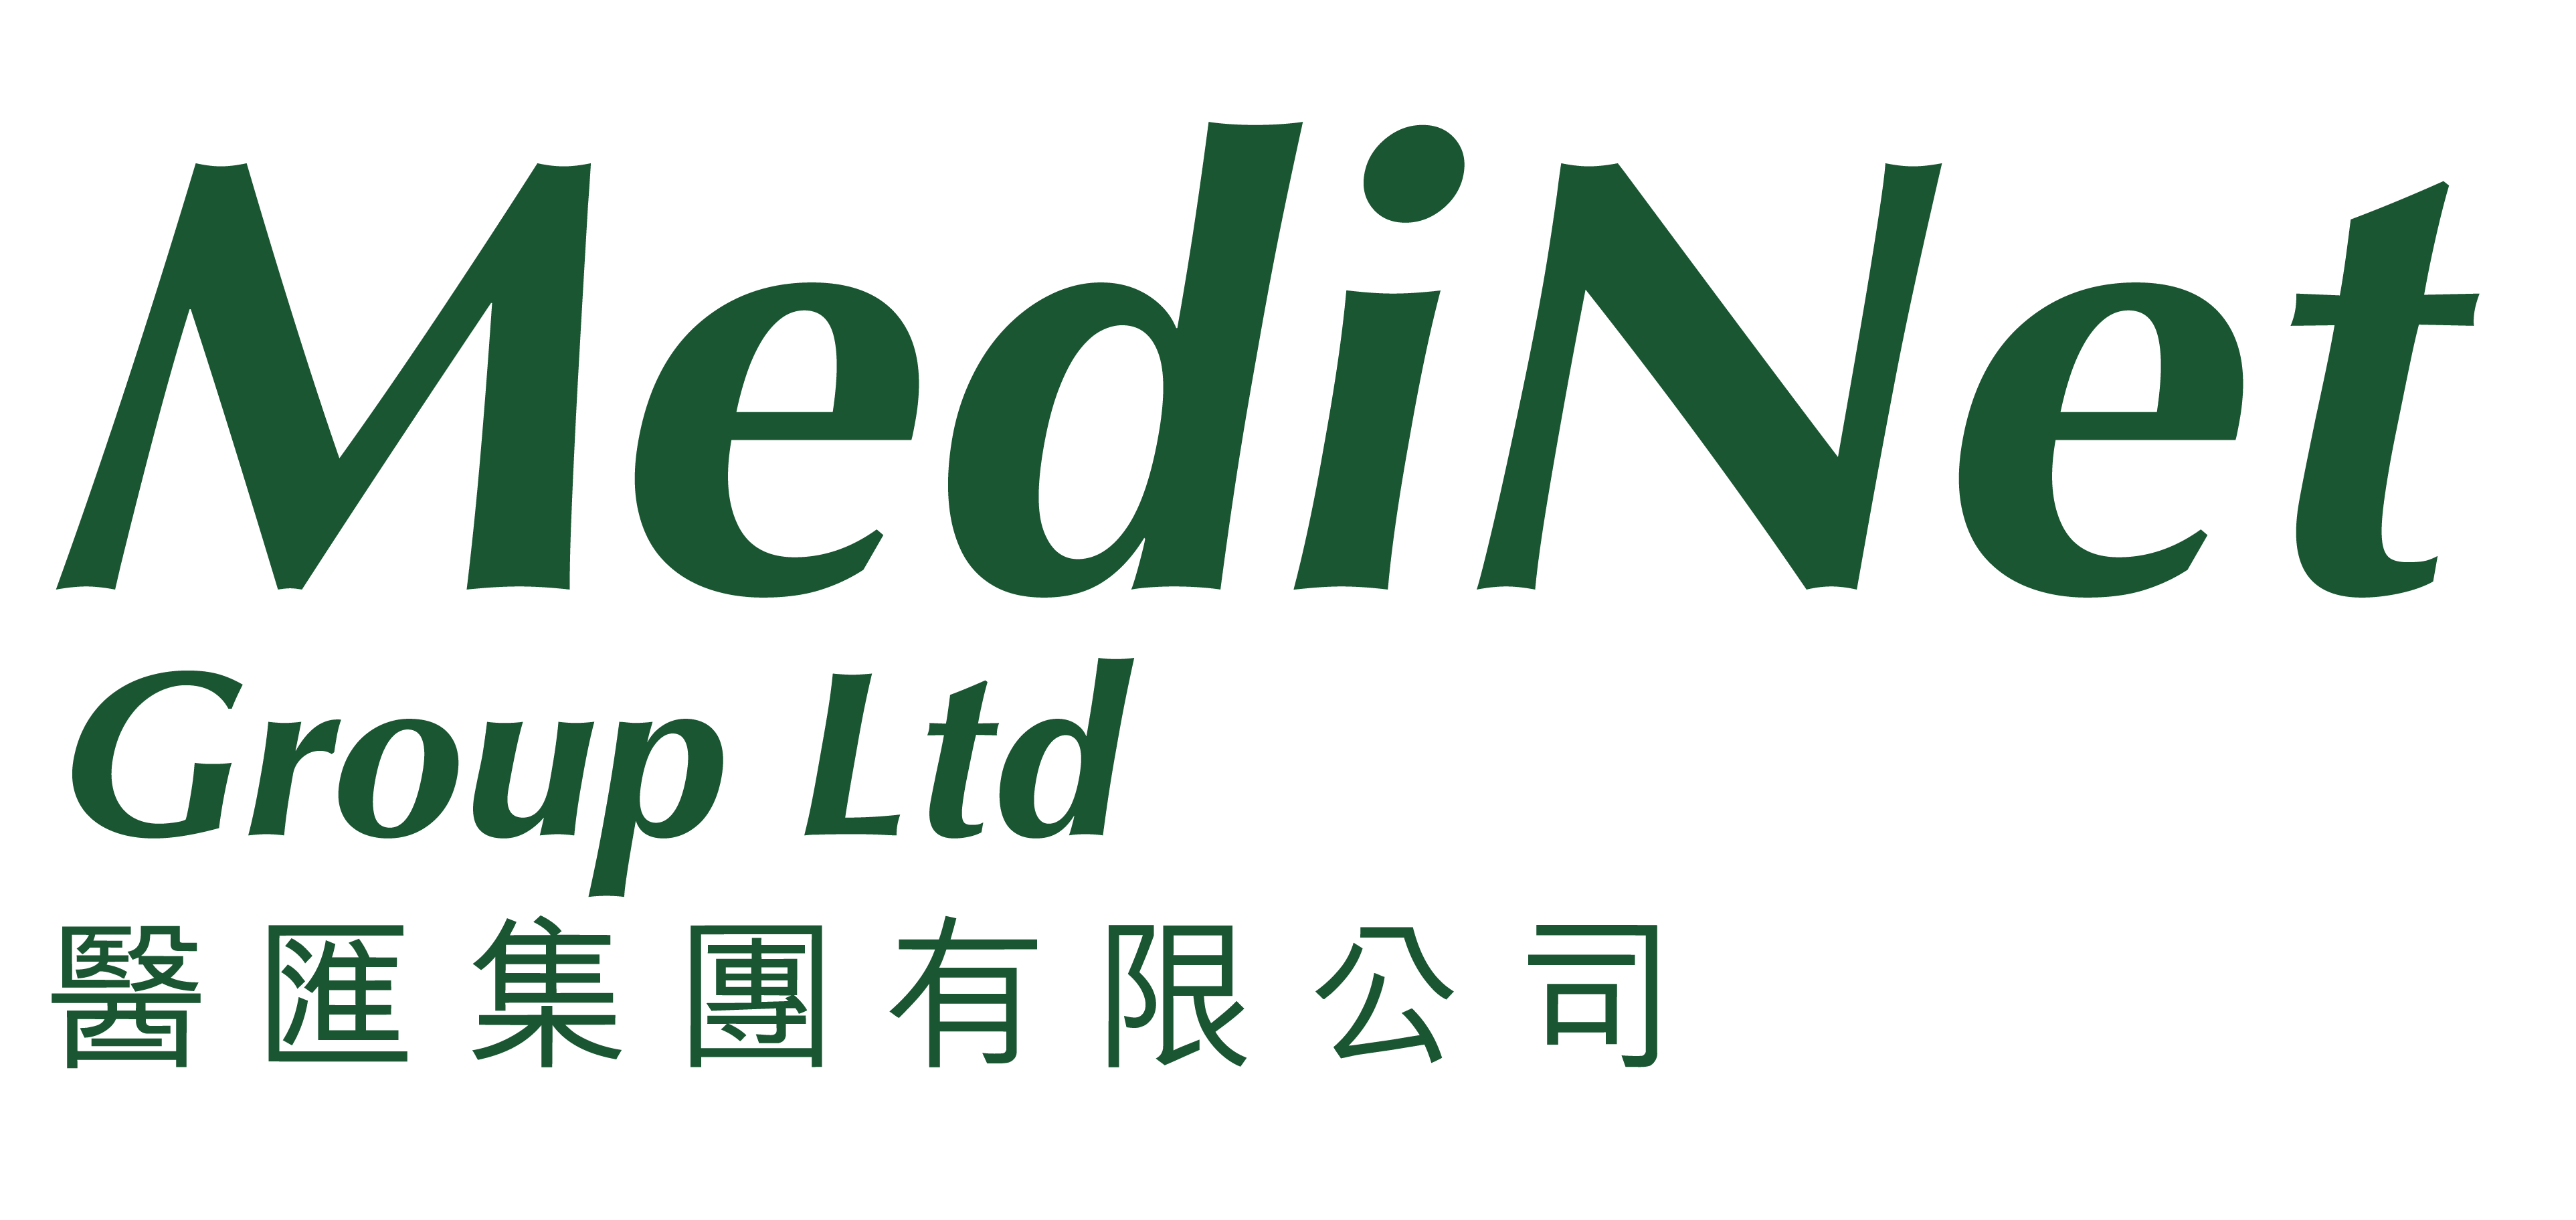 Medinet Group Ltd